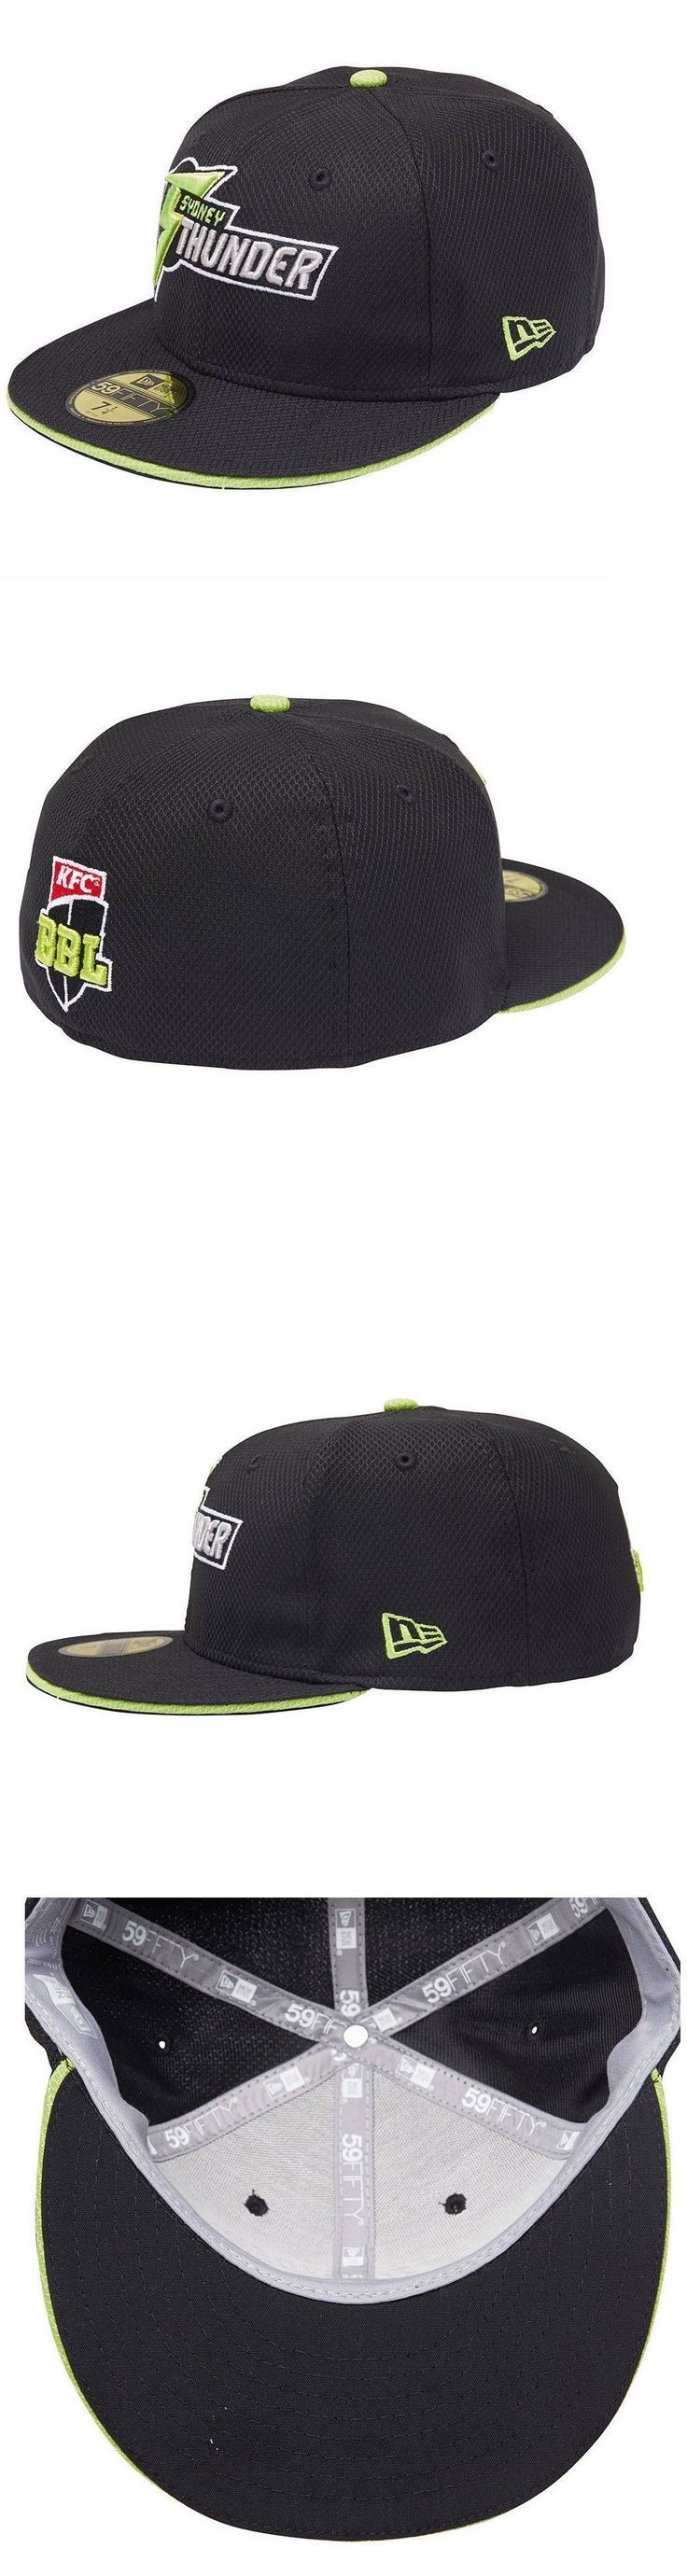 Hats and Headwear 123876: New Era Sydney Thunder 2016 17 59Fifty On-Field Away Cap - Size 7 1 2 Or 5 8 -> BUY IT NOW ONLY: $160.95 on eBay!